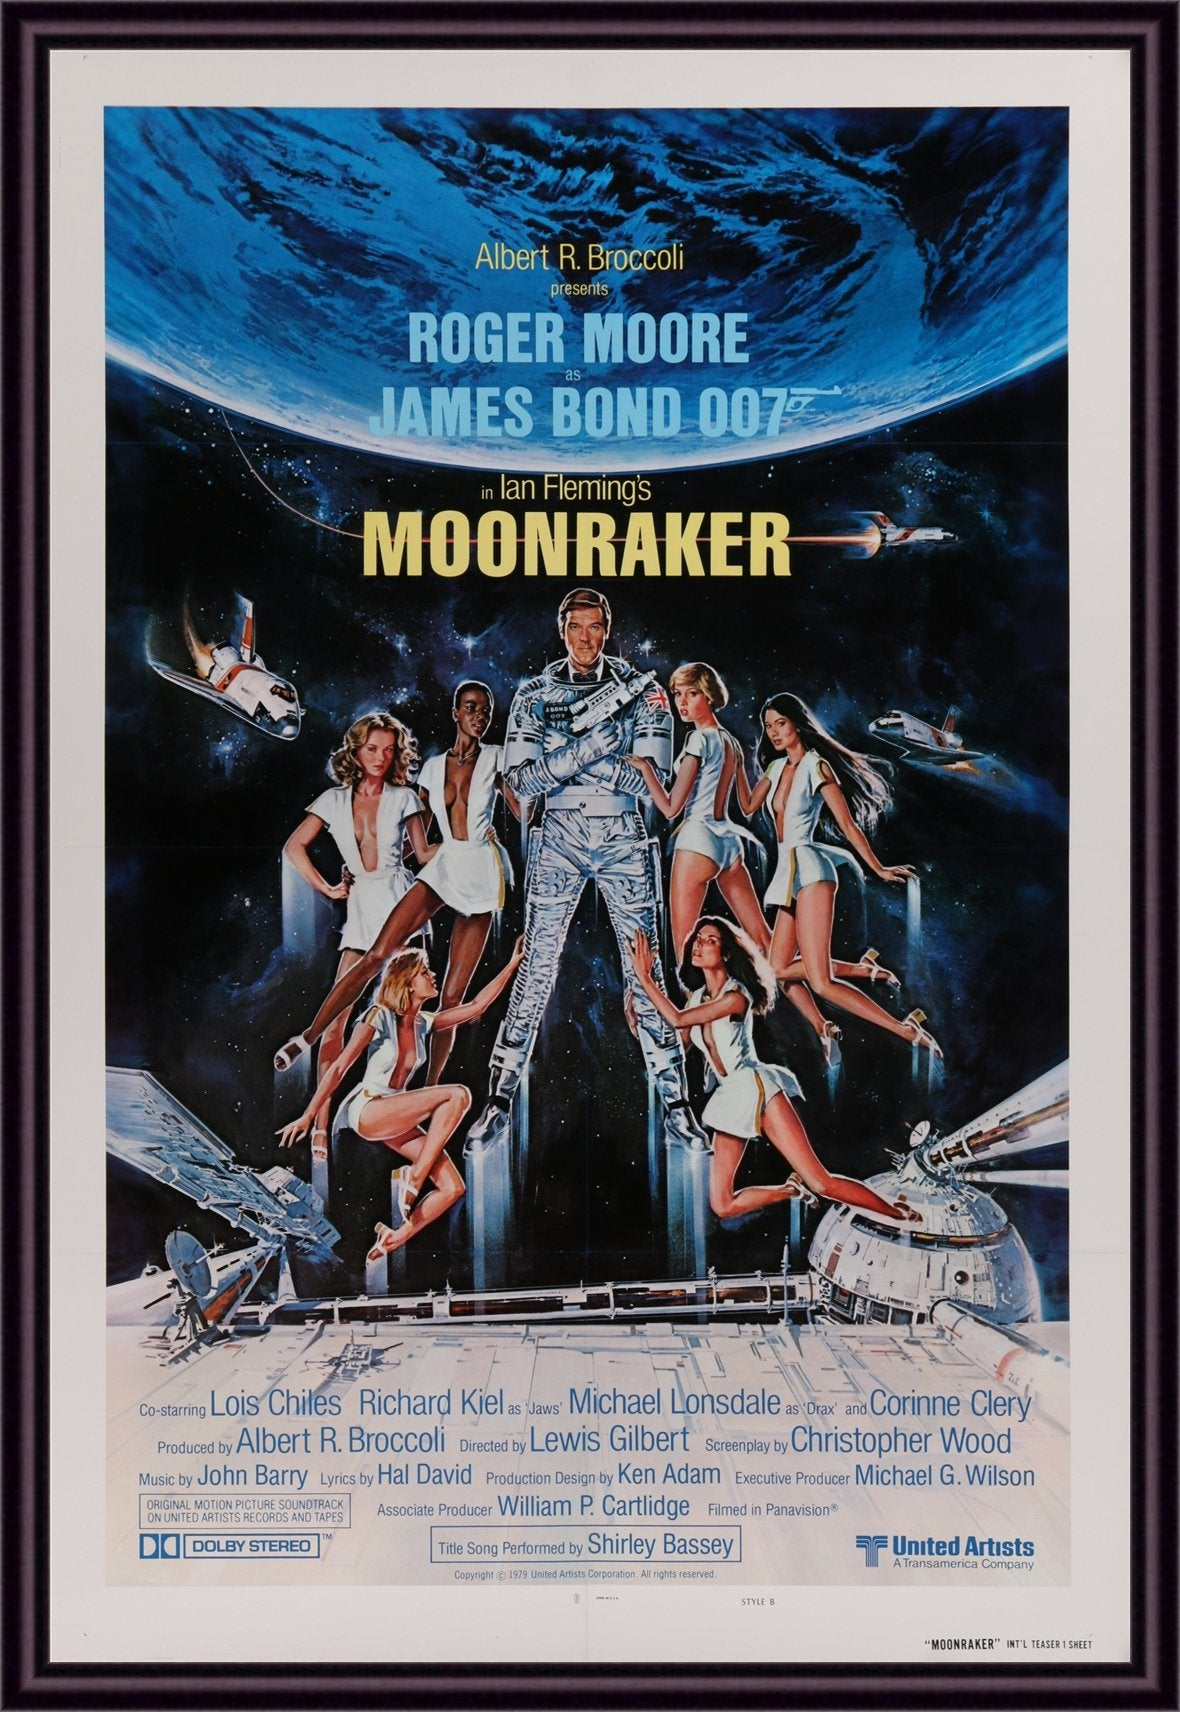 An original movie poster for the James Bond film Moonraker